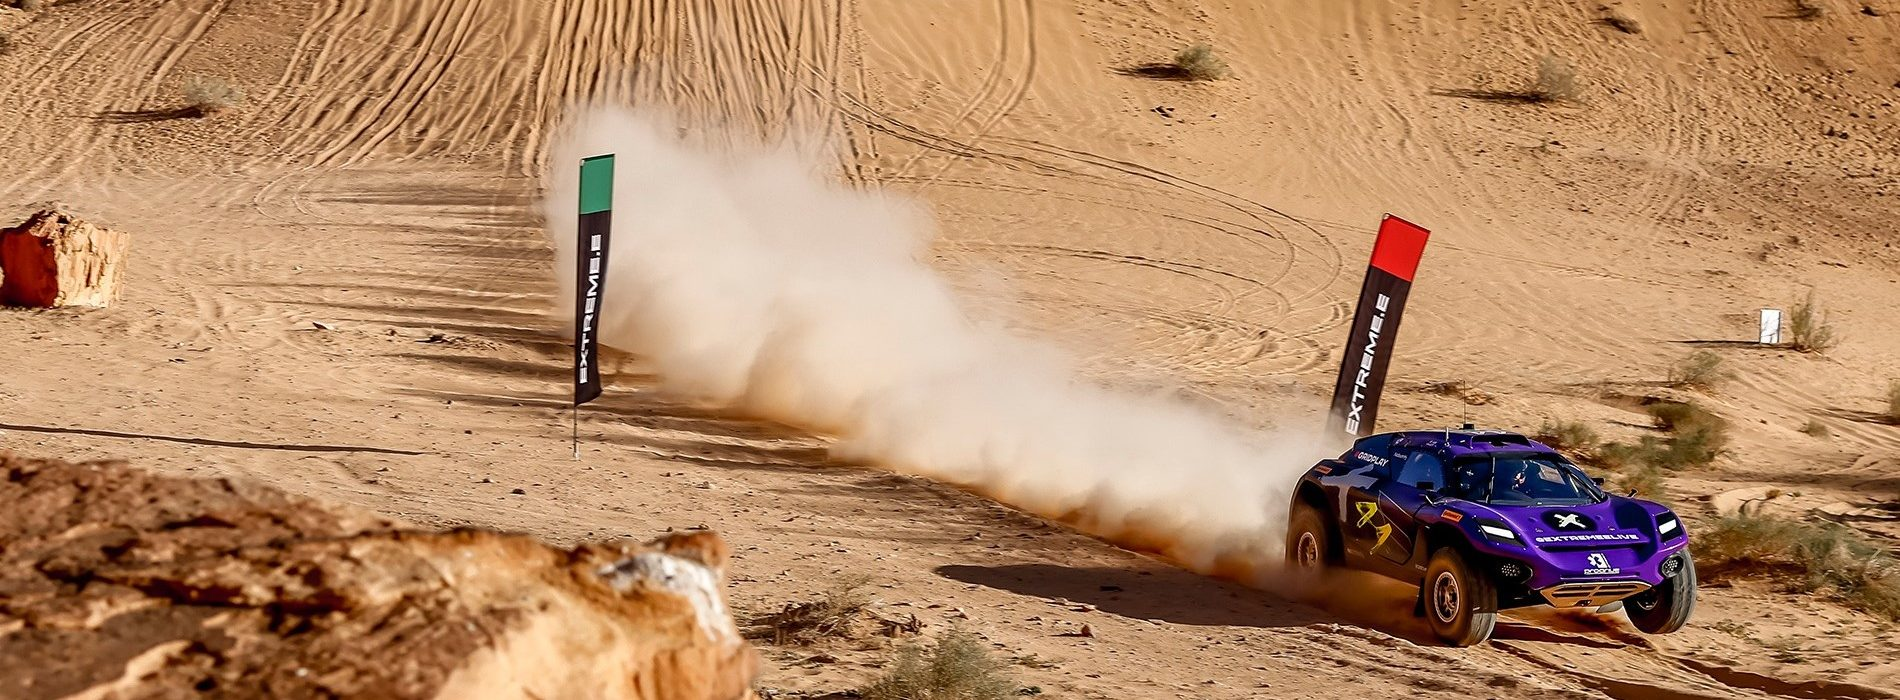 How did Extreme E deliver racing to global audience through sustainable use of technology?